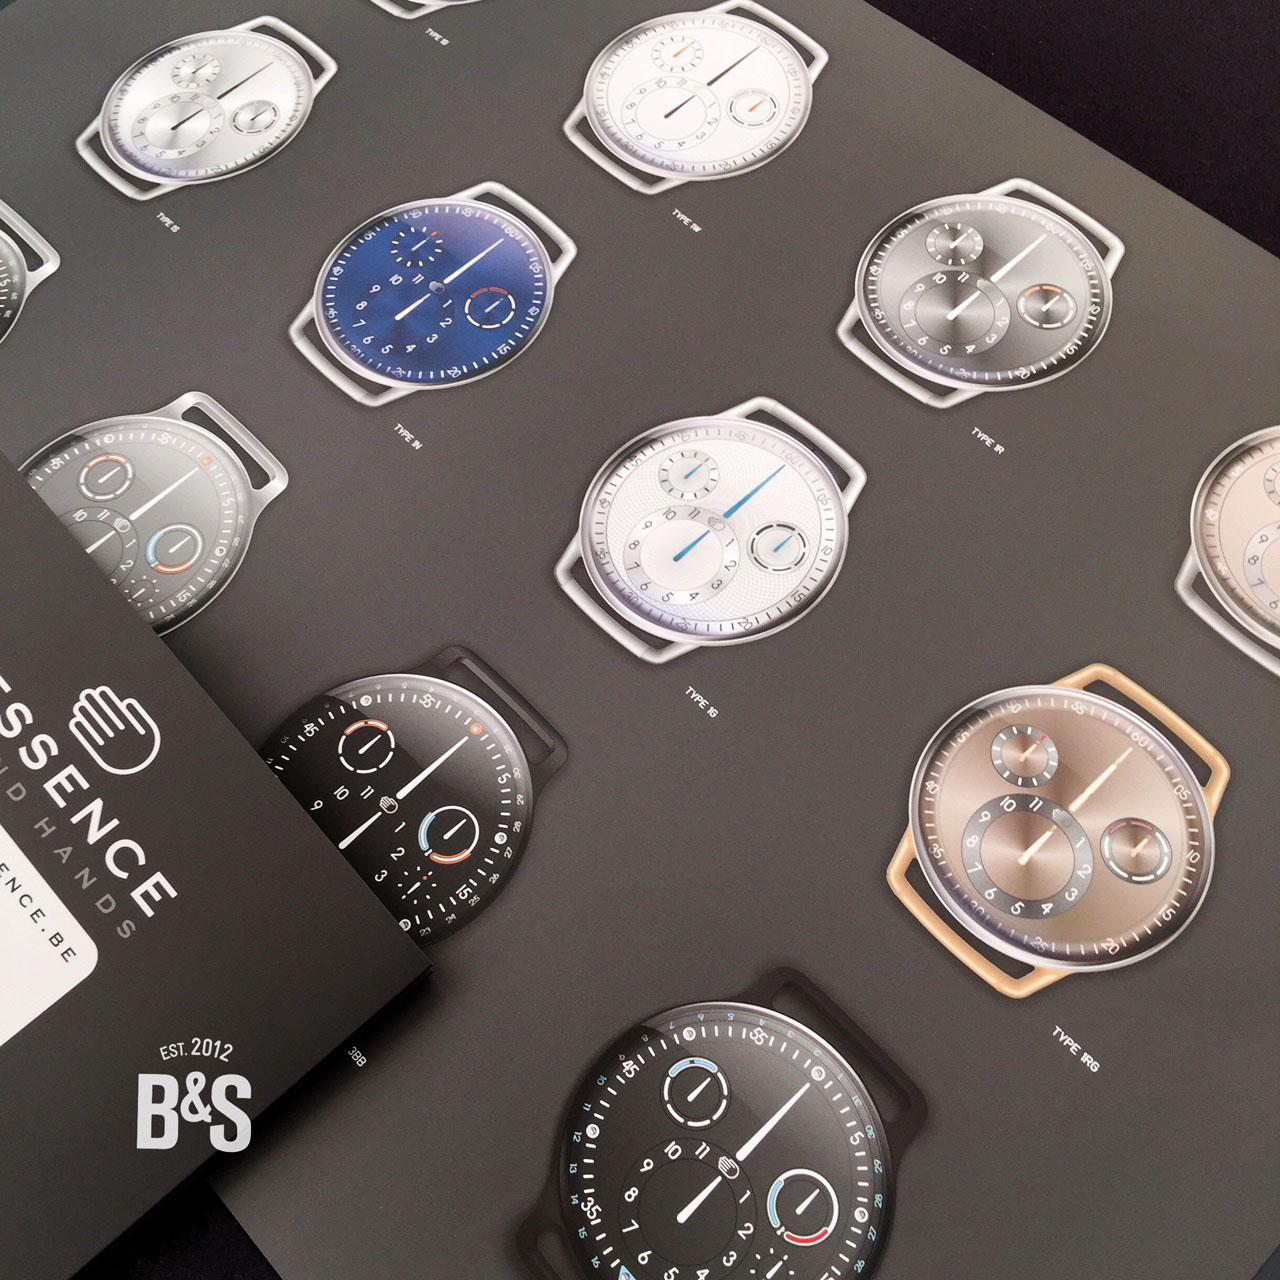 Baselworld 2015 B&S magazine